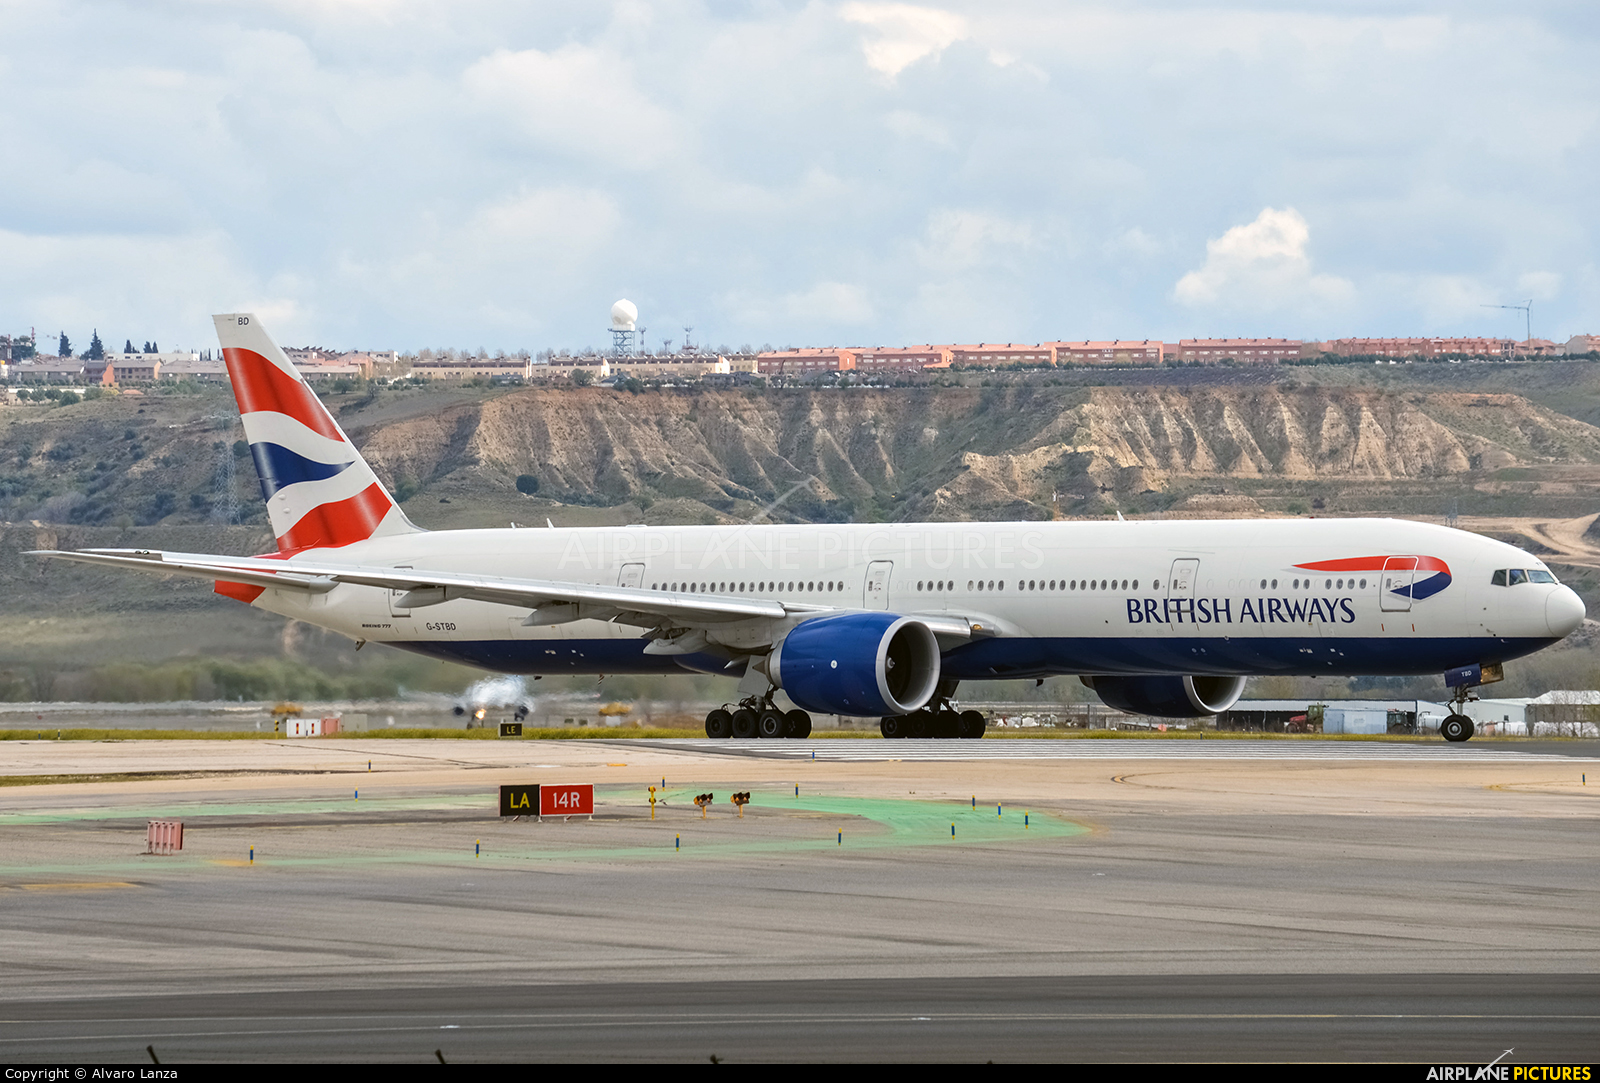 British Airways G-STBD aircraft at Madrid - Barajas